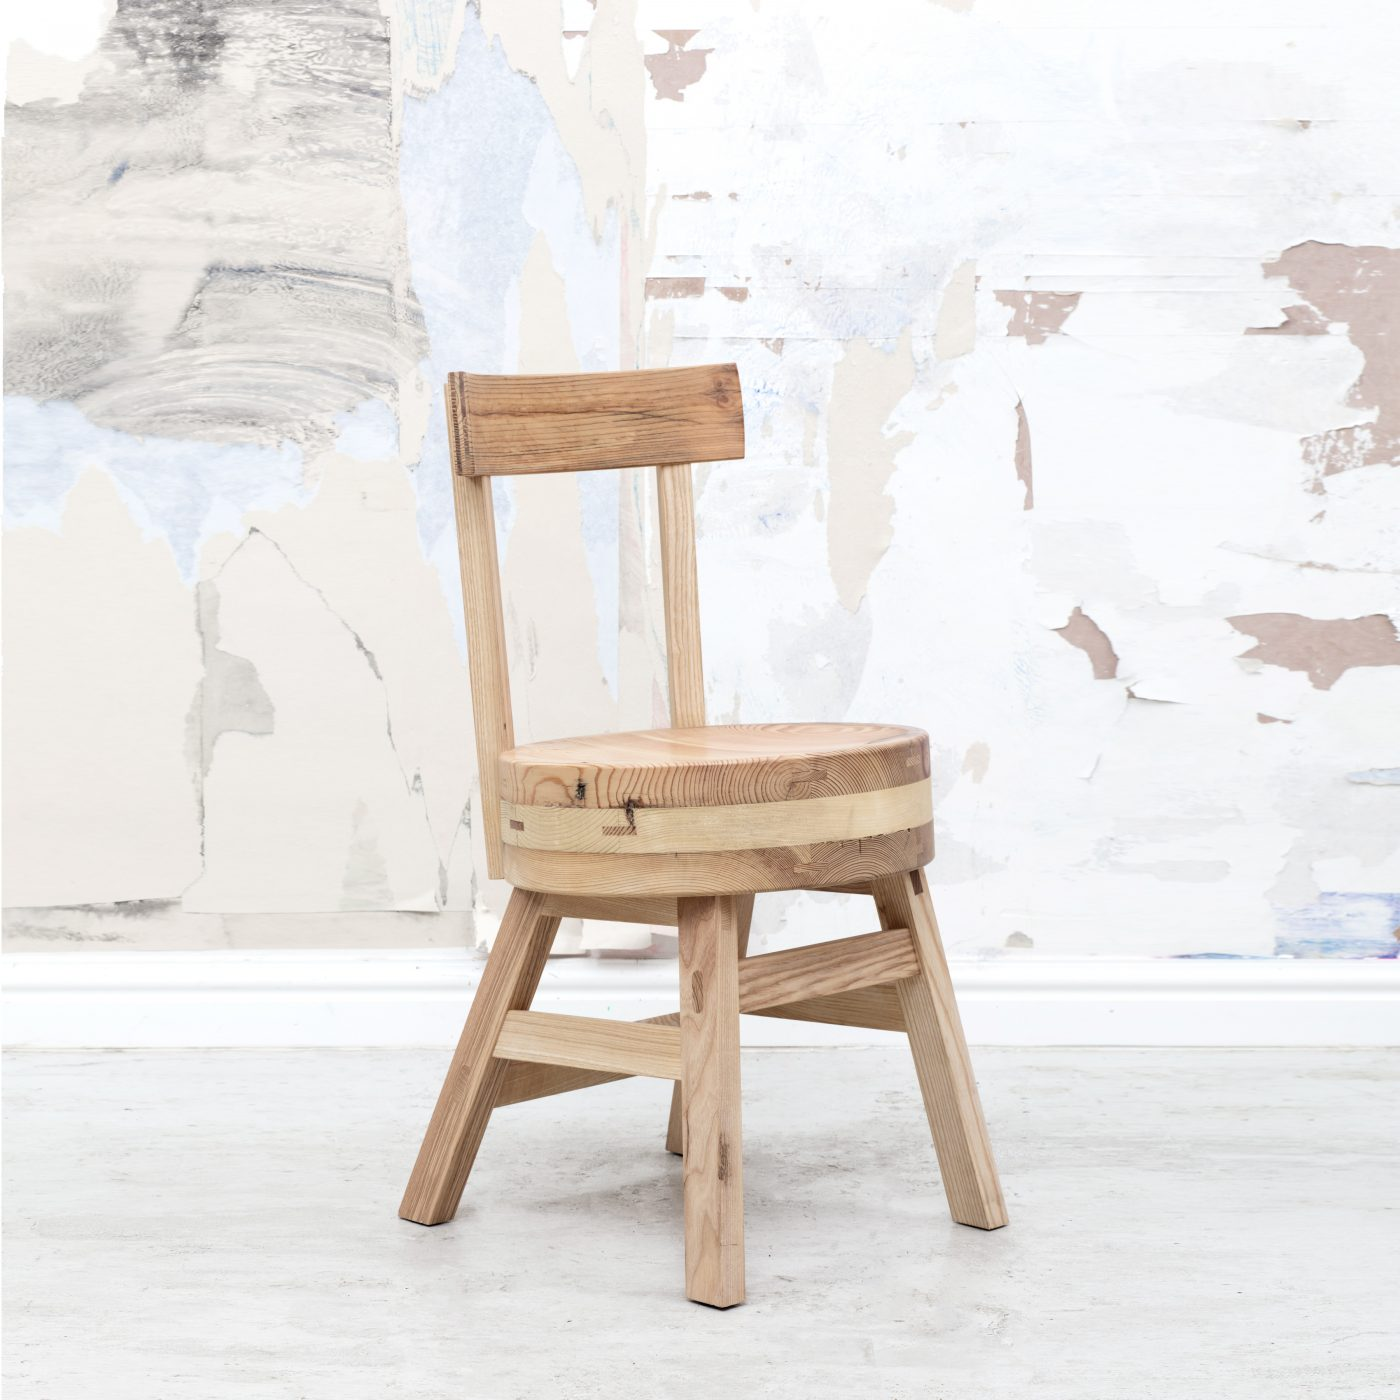 Jan Hendzel Studio little big one chair